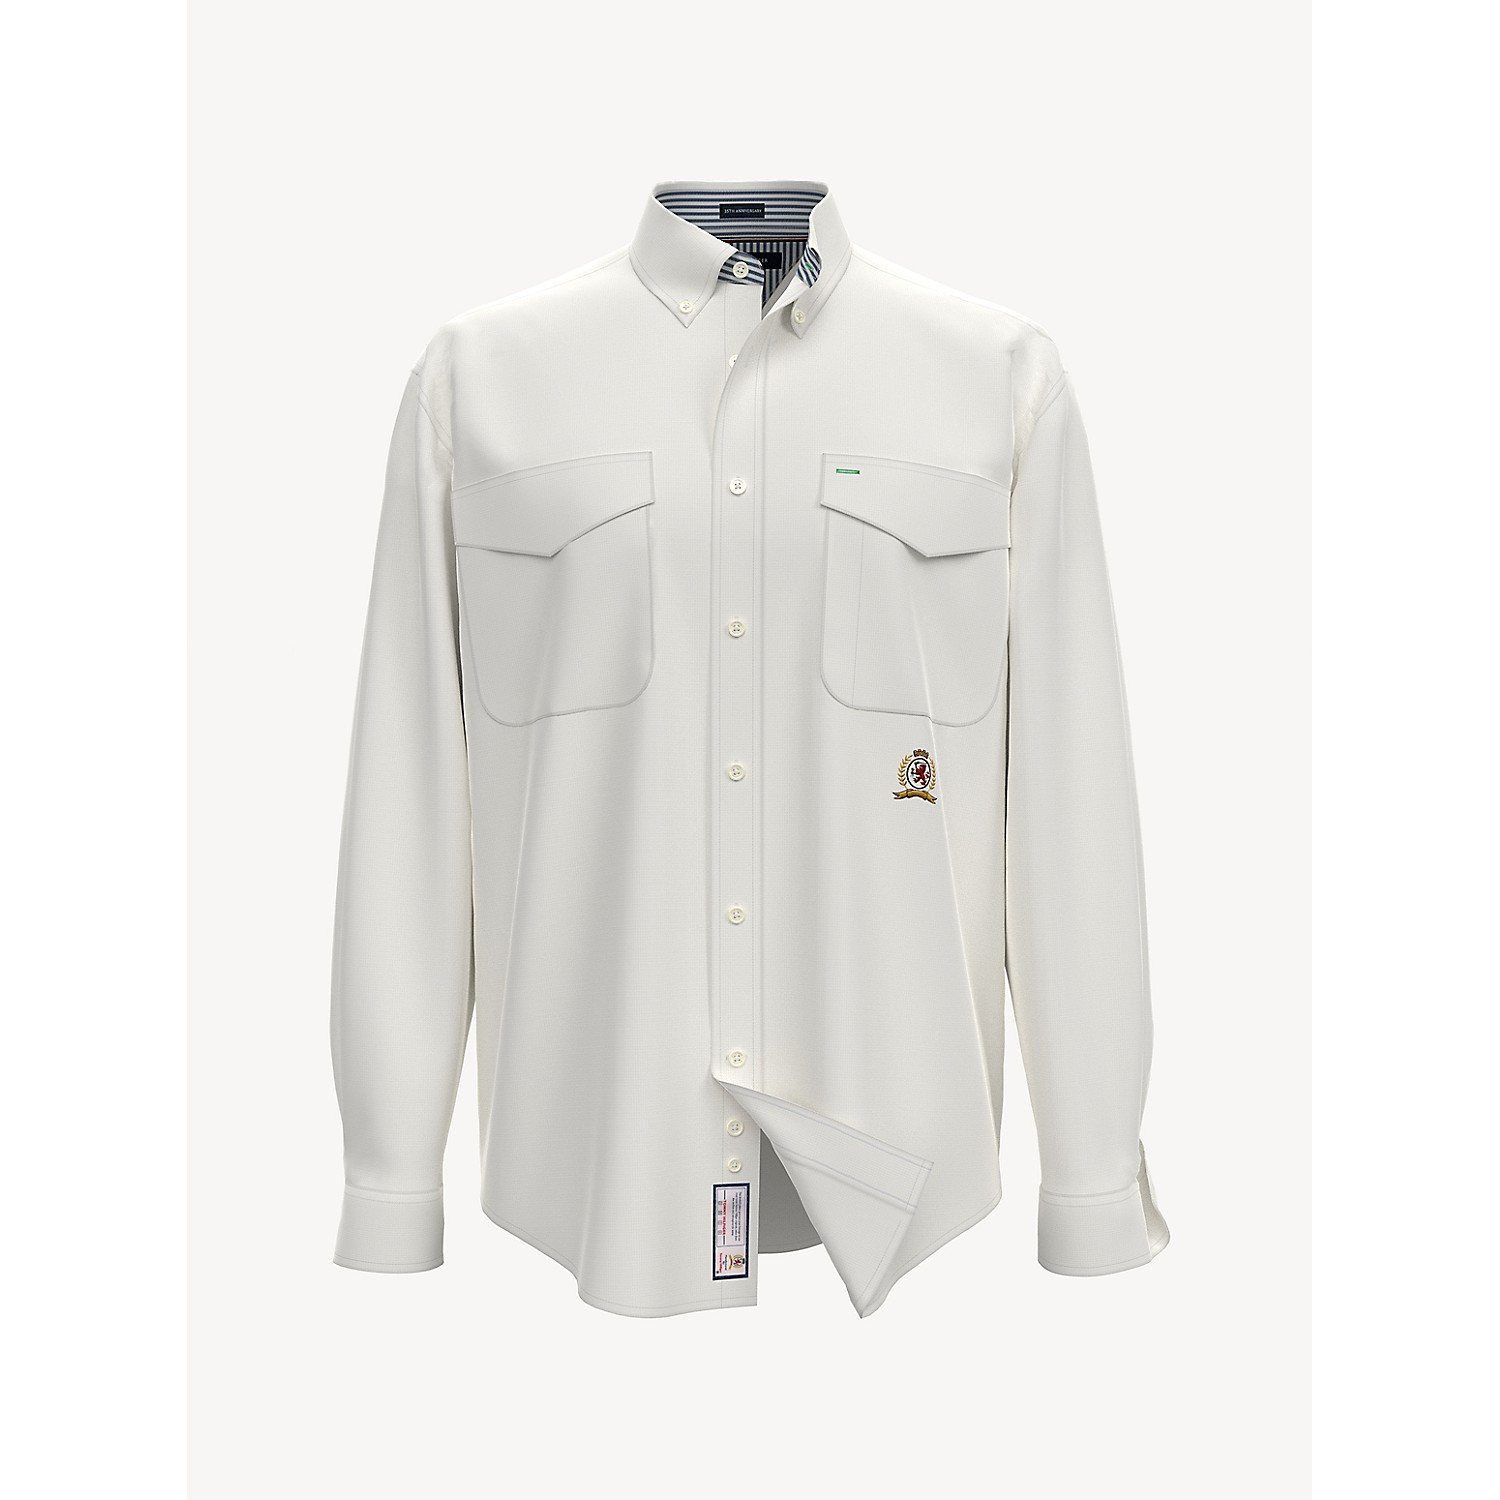 TOMMY HILFIGER 35th Anniversary Crest Oxford Shirt